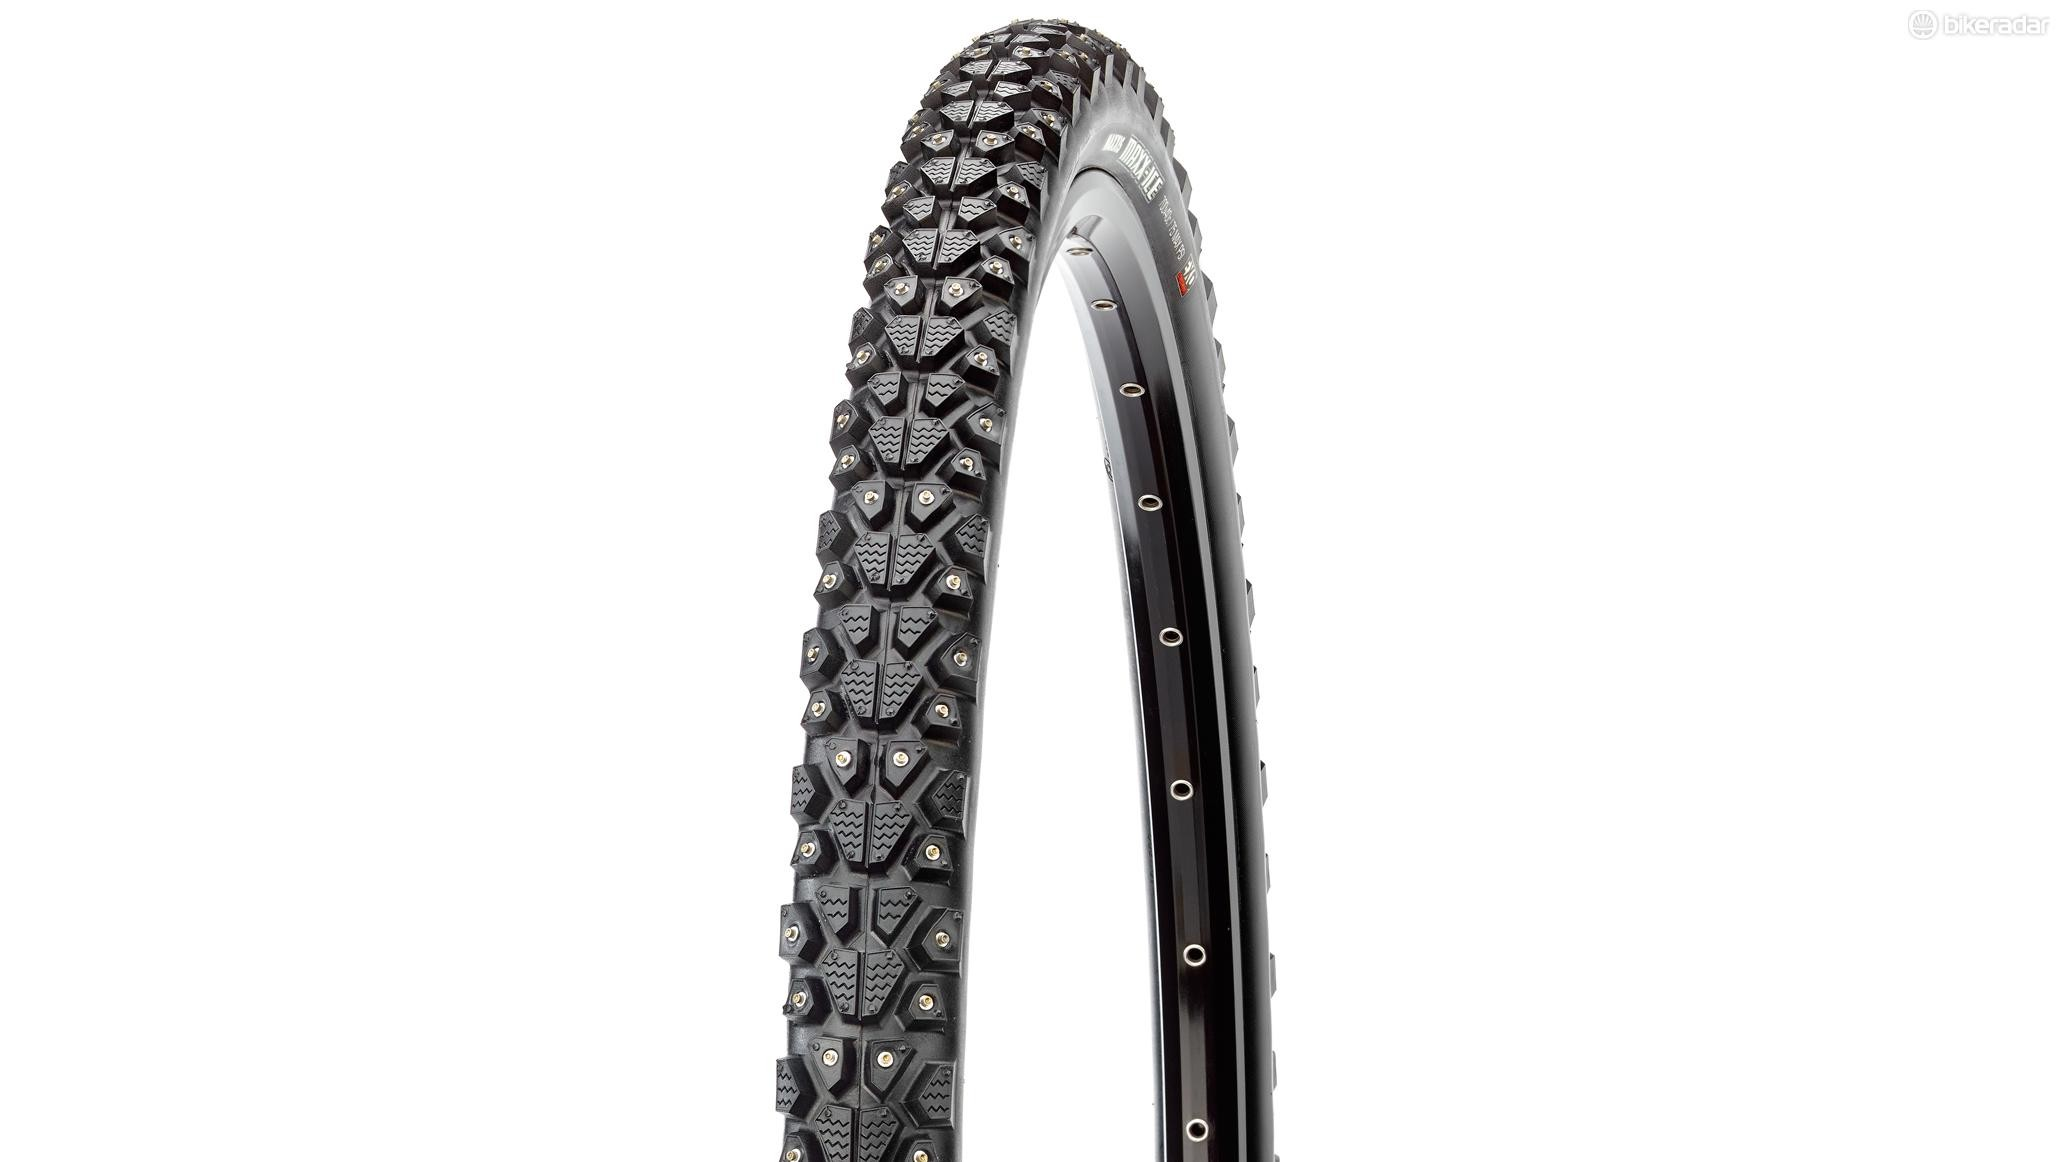 For those who ride no matter what the conditions, the Maxx-Ice should fit the bill